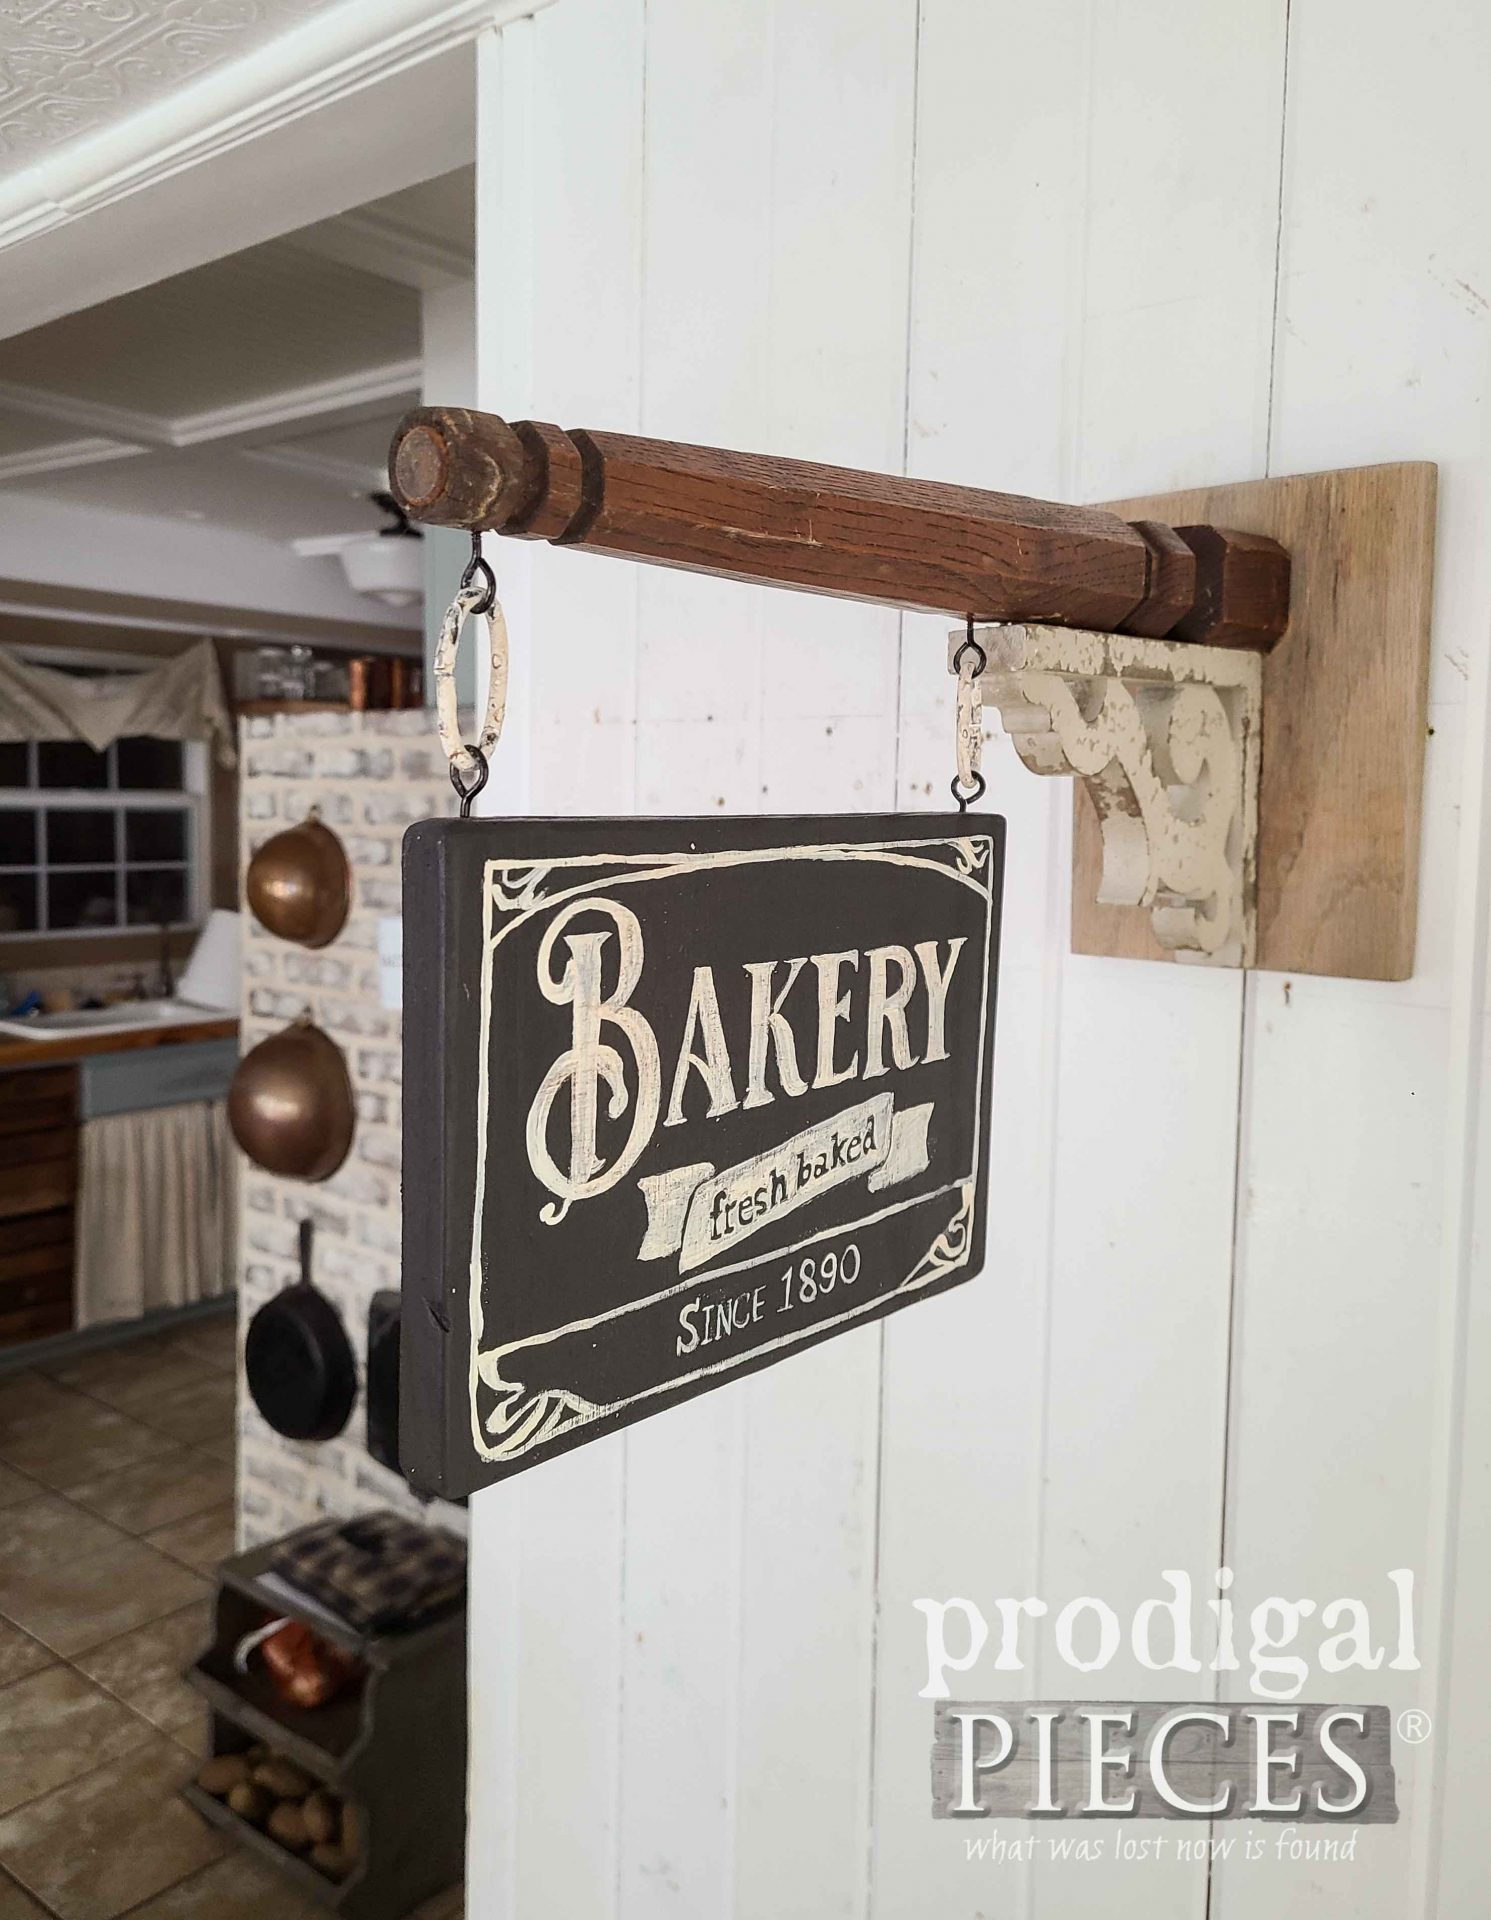 Farmhouse Kitchen Decor Baking Sign by Larissa of Prodigal Pieces | prodigalpieces.com #prodigalpieces #farmhouse #home #diy